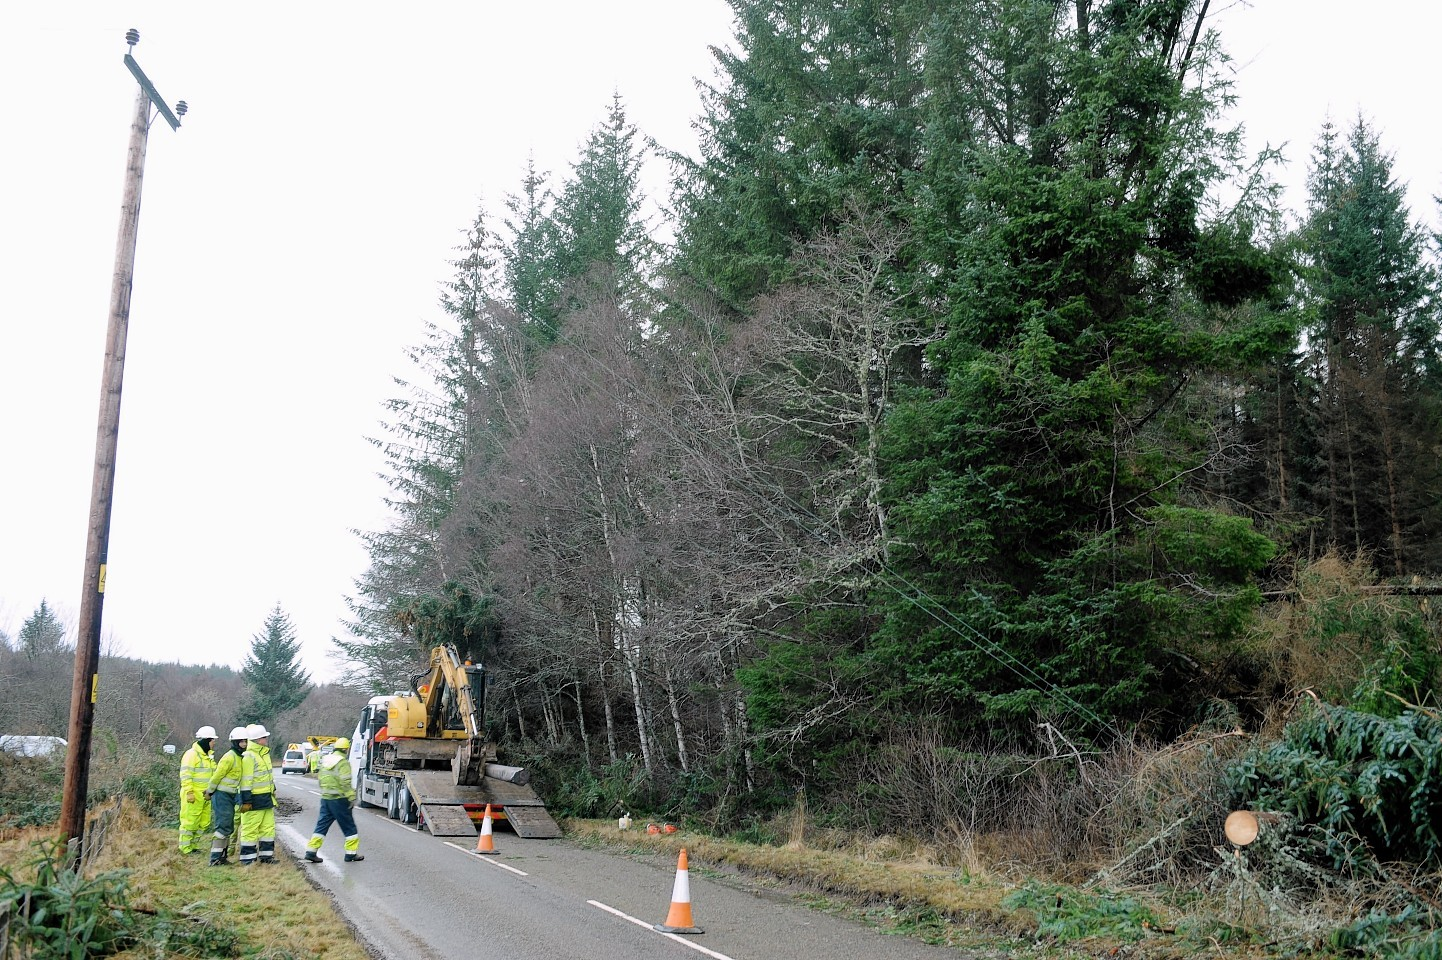 Engineers repair powerlines between Balnain and Cannich